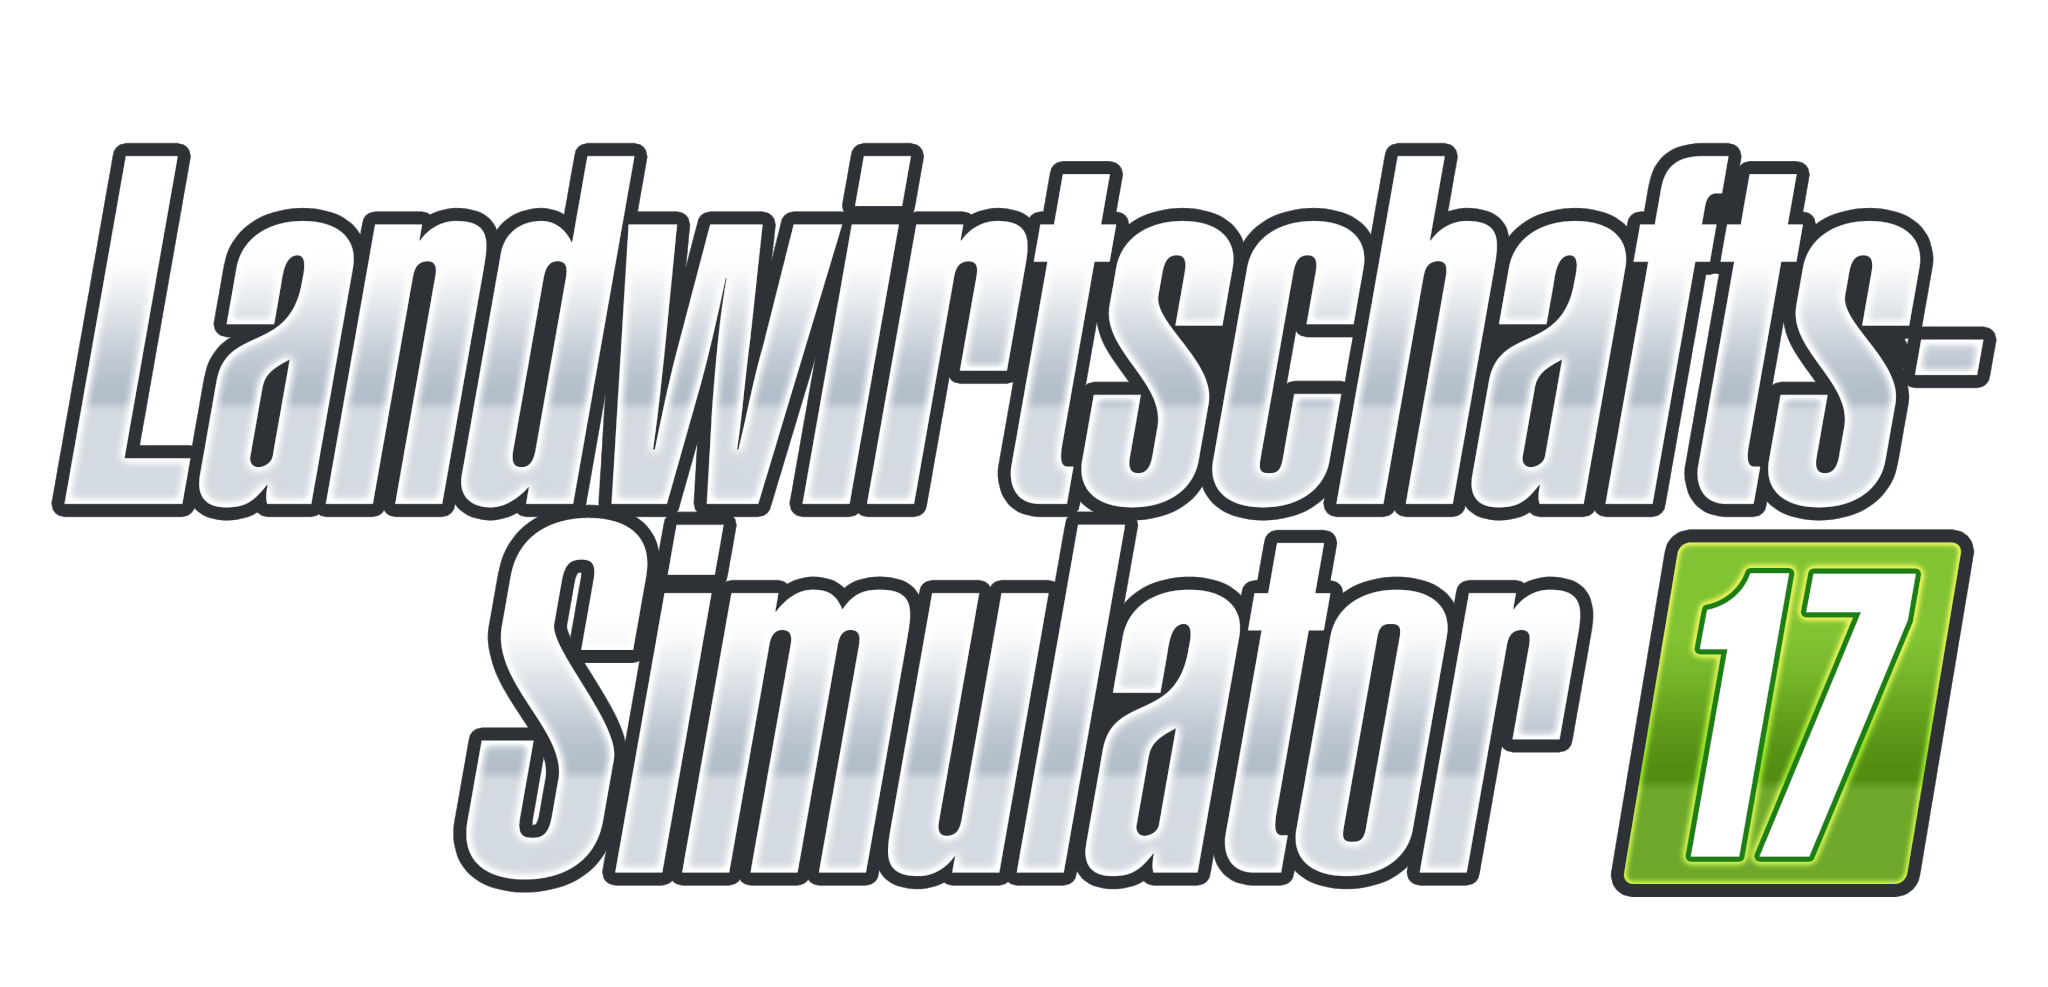 Logo von Landwirtschafts-Simulator 17 (Bildrechte: Focus Home Entertainment)